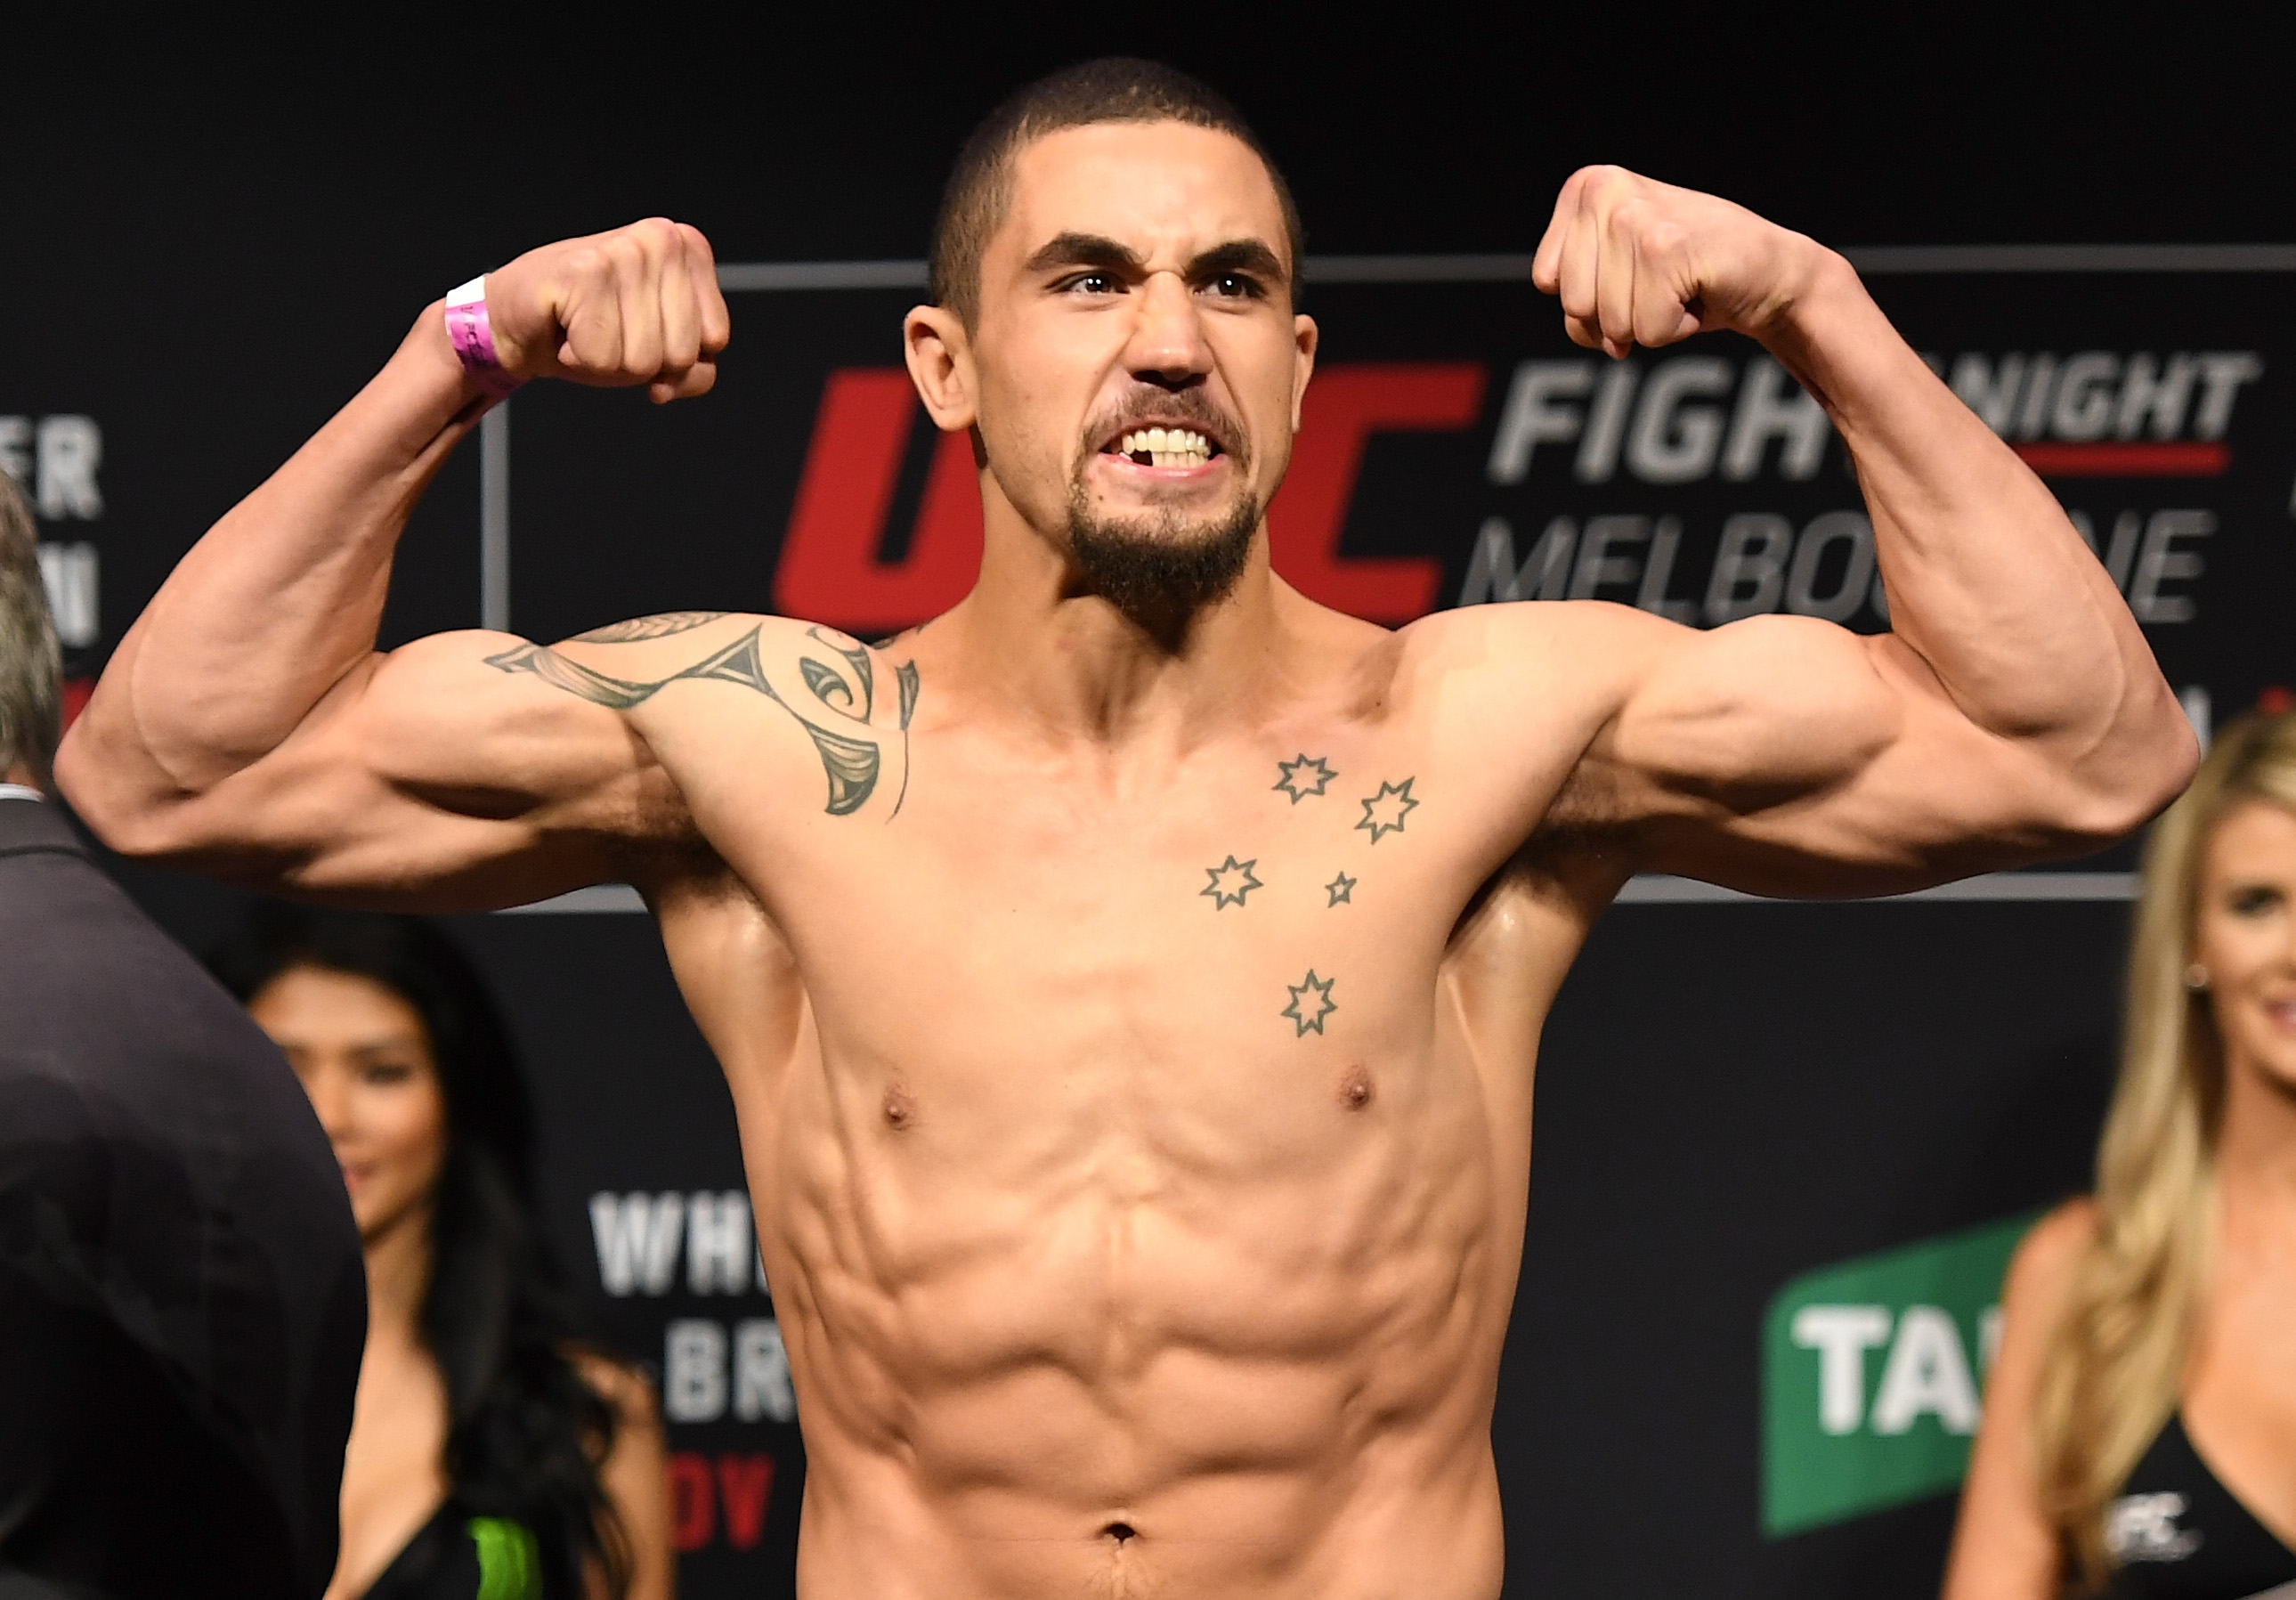 Robert Whittaker weighing in for a UFC fight